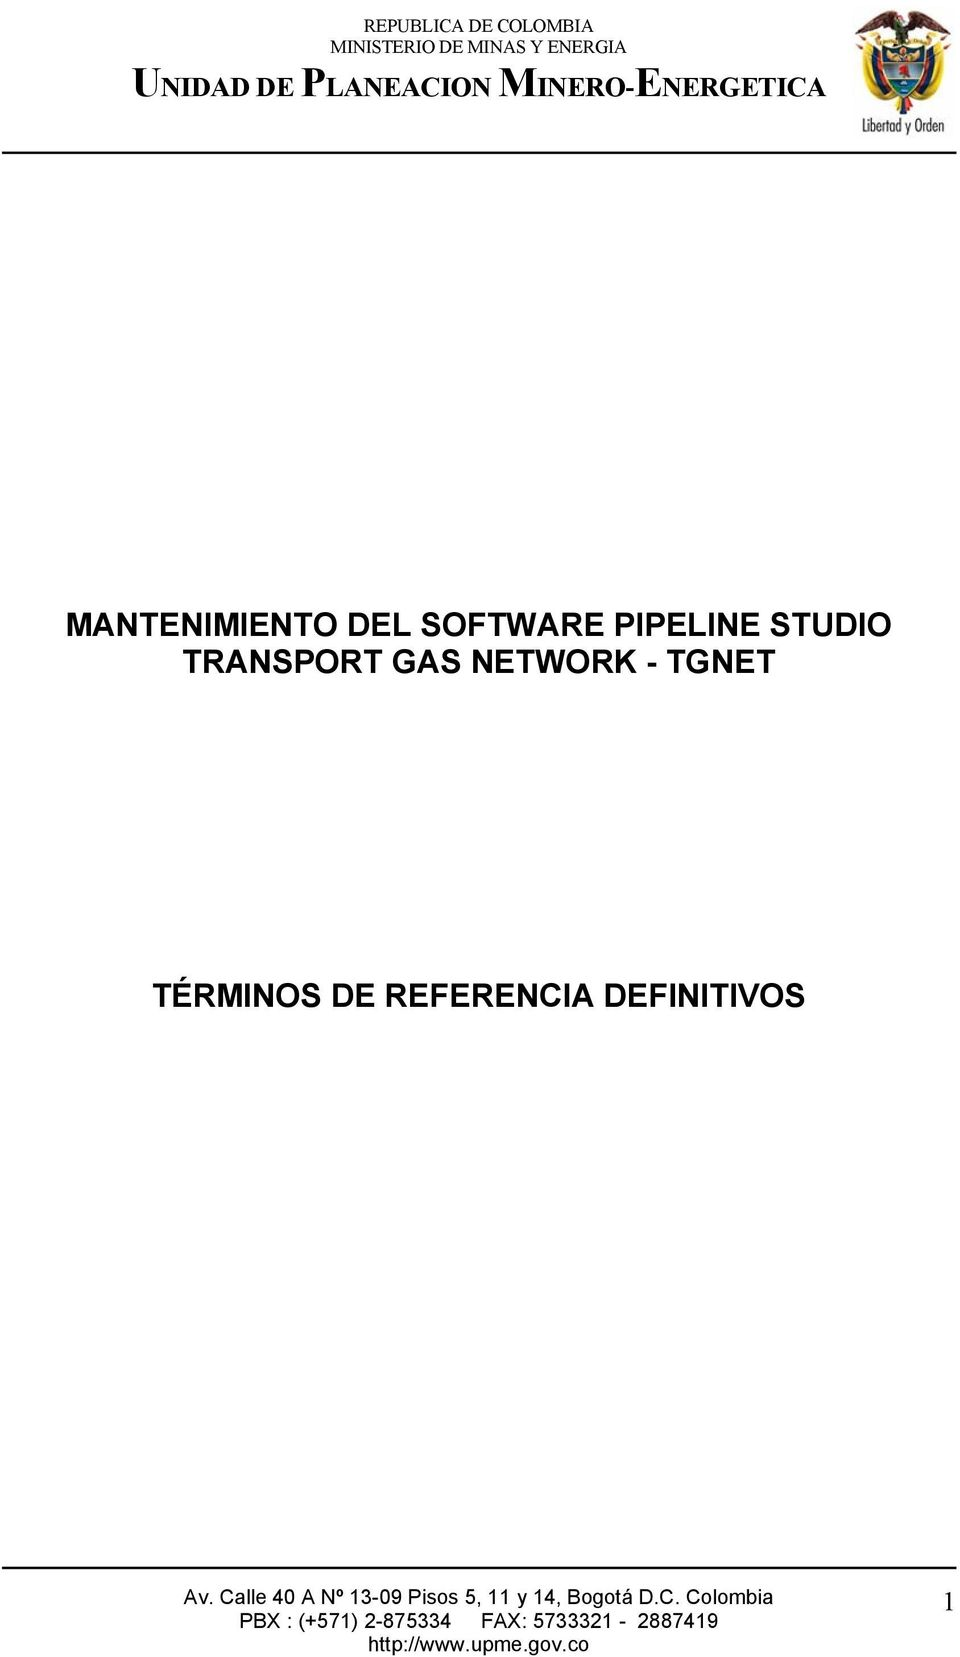 GAS NETWORK - TGNET